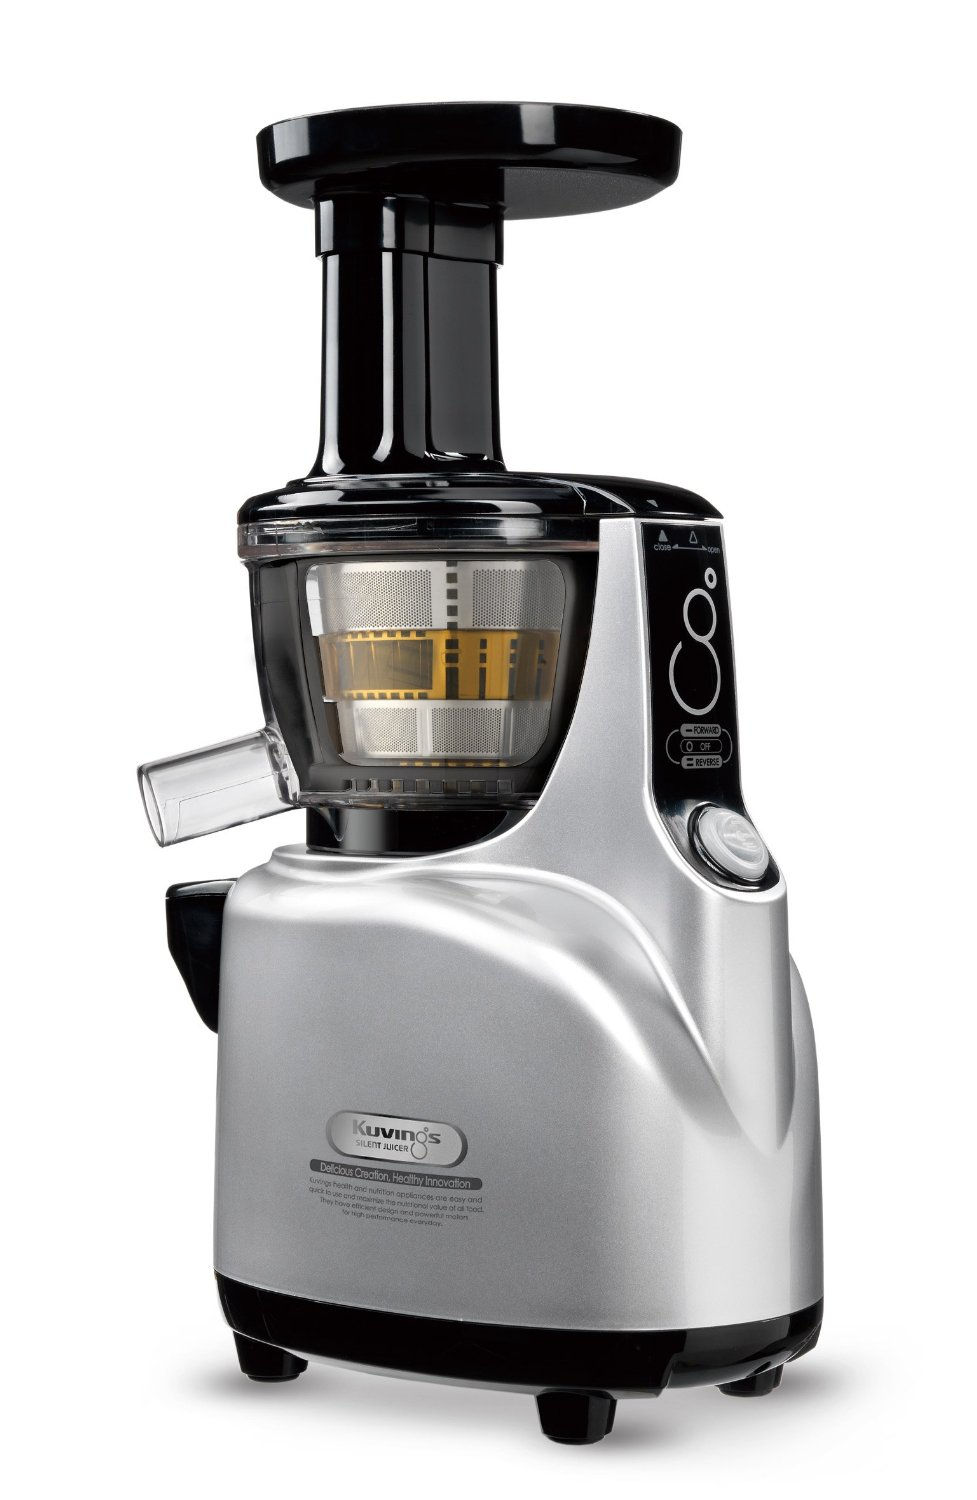 Best Juicer Masticating Or Centrifugal : The Best Juice Machine Reviews of Masticating and Centrifugal Juicers